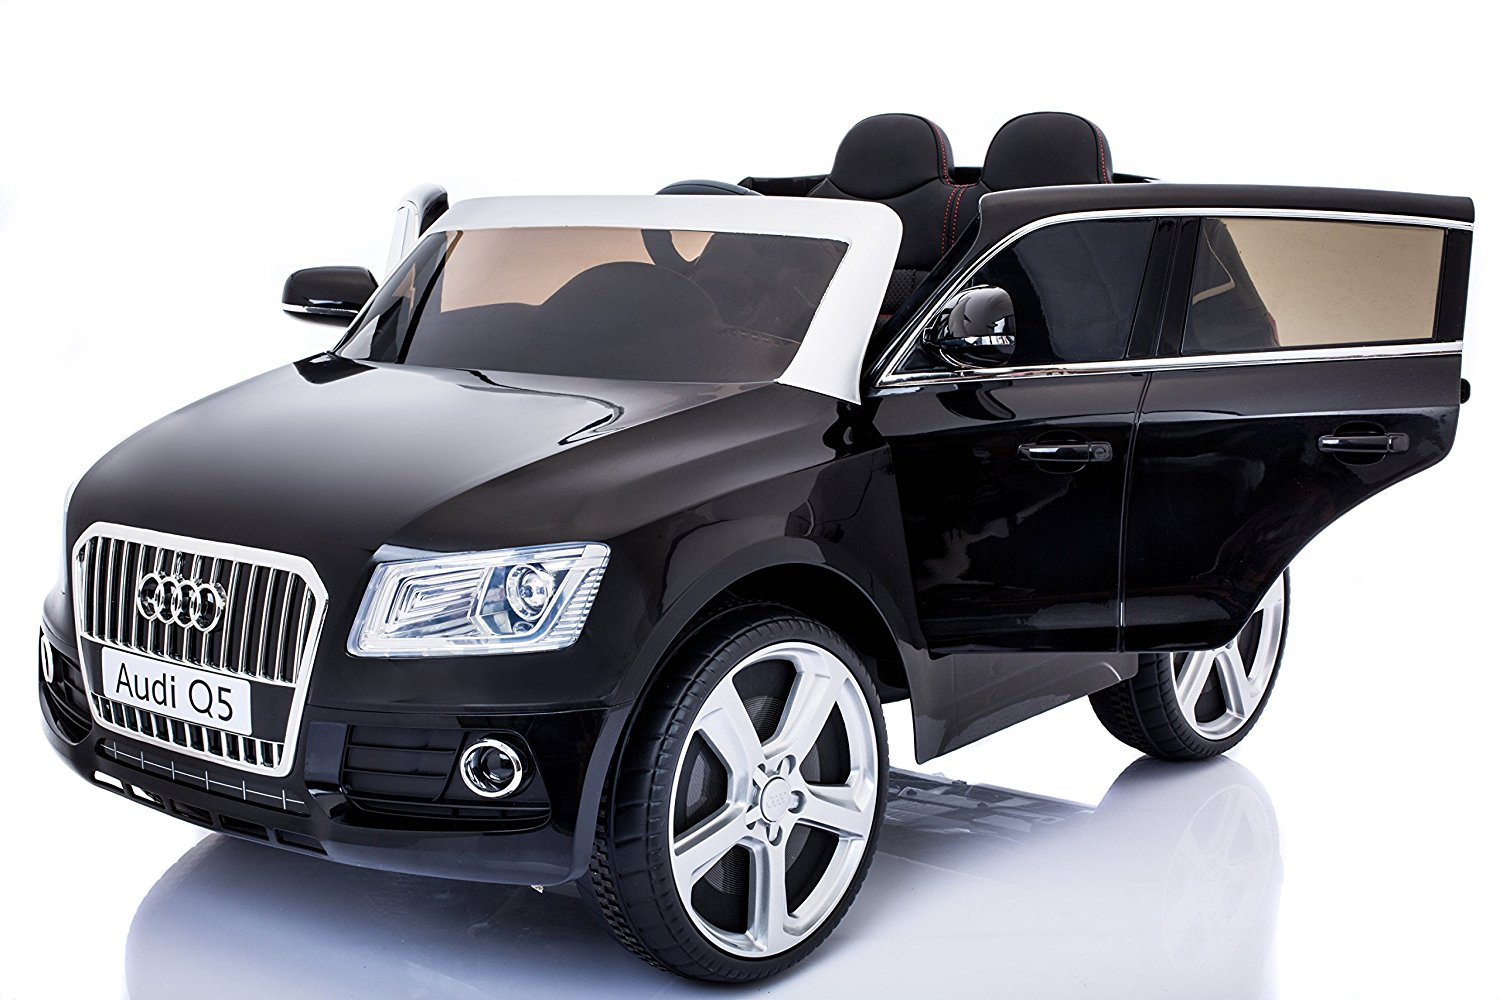 Electric cAr AUDI Q5 Licensed. Сar for KIDS to ride from 2 to 6 years. Ride on car for children. Remote control, Battery Operated 12V. Pedal car for kids. Ride on toys for BOYS and GIRLS